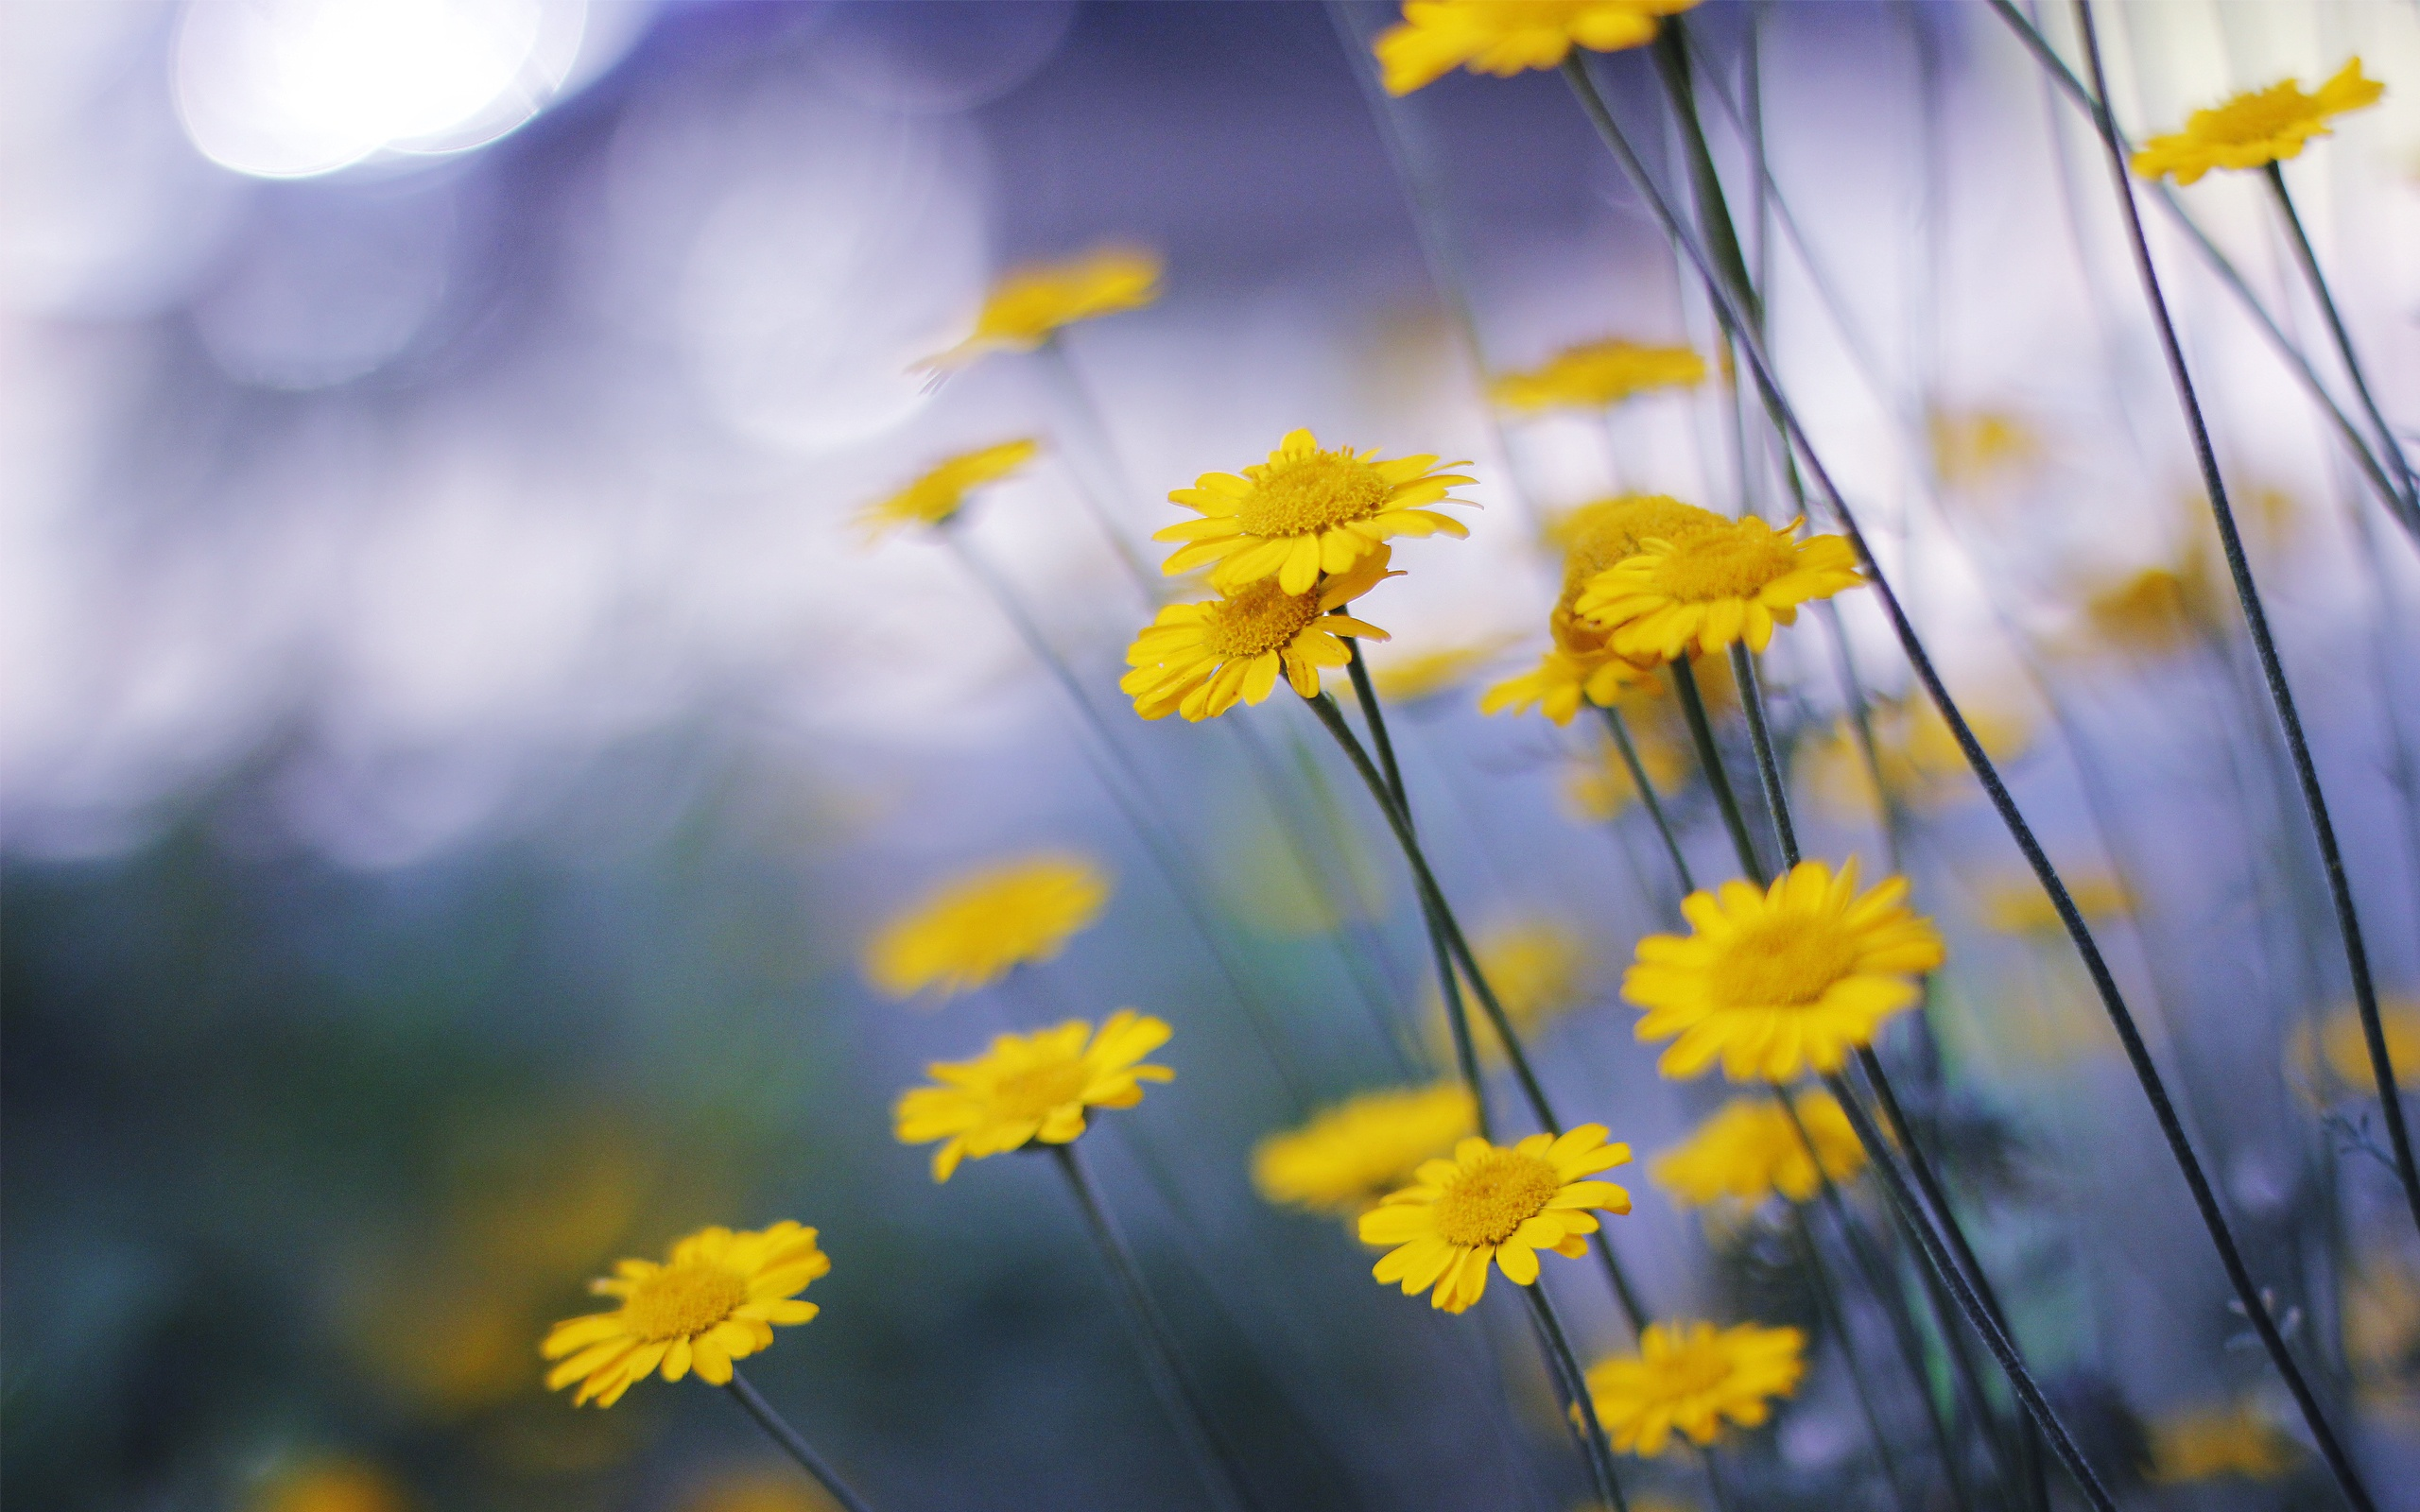 Wallpaper little yellow flowers macro photography 2560x1600 hd download this wallpaper mightylinksfo